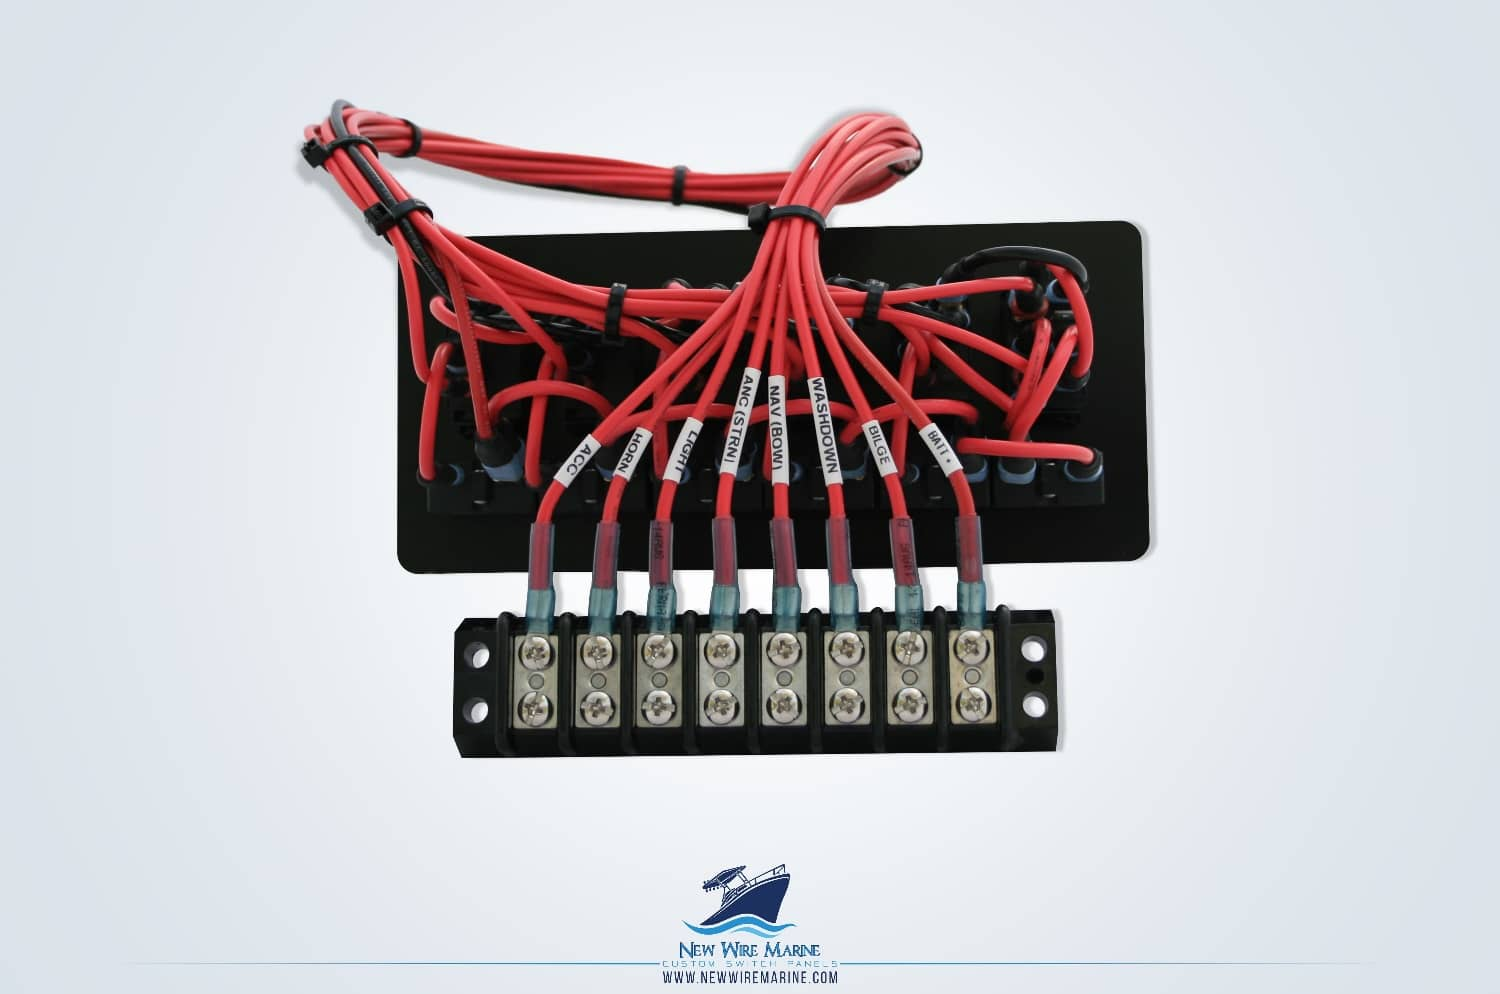 boat stereo wiring diagram 1 phase contactor with overload block for great installation of how to wire a beginners guide diagrams new marine rh newwiremarine com schematics